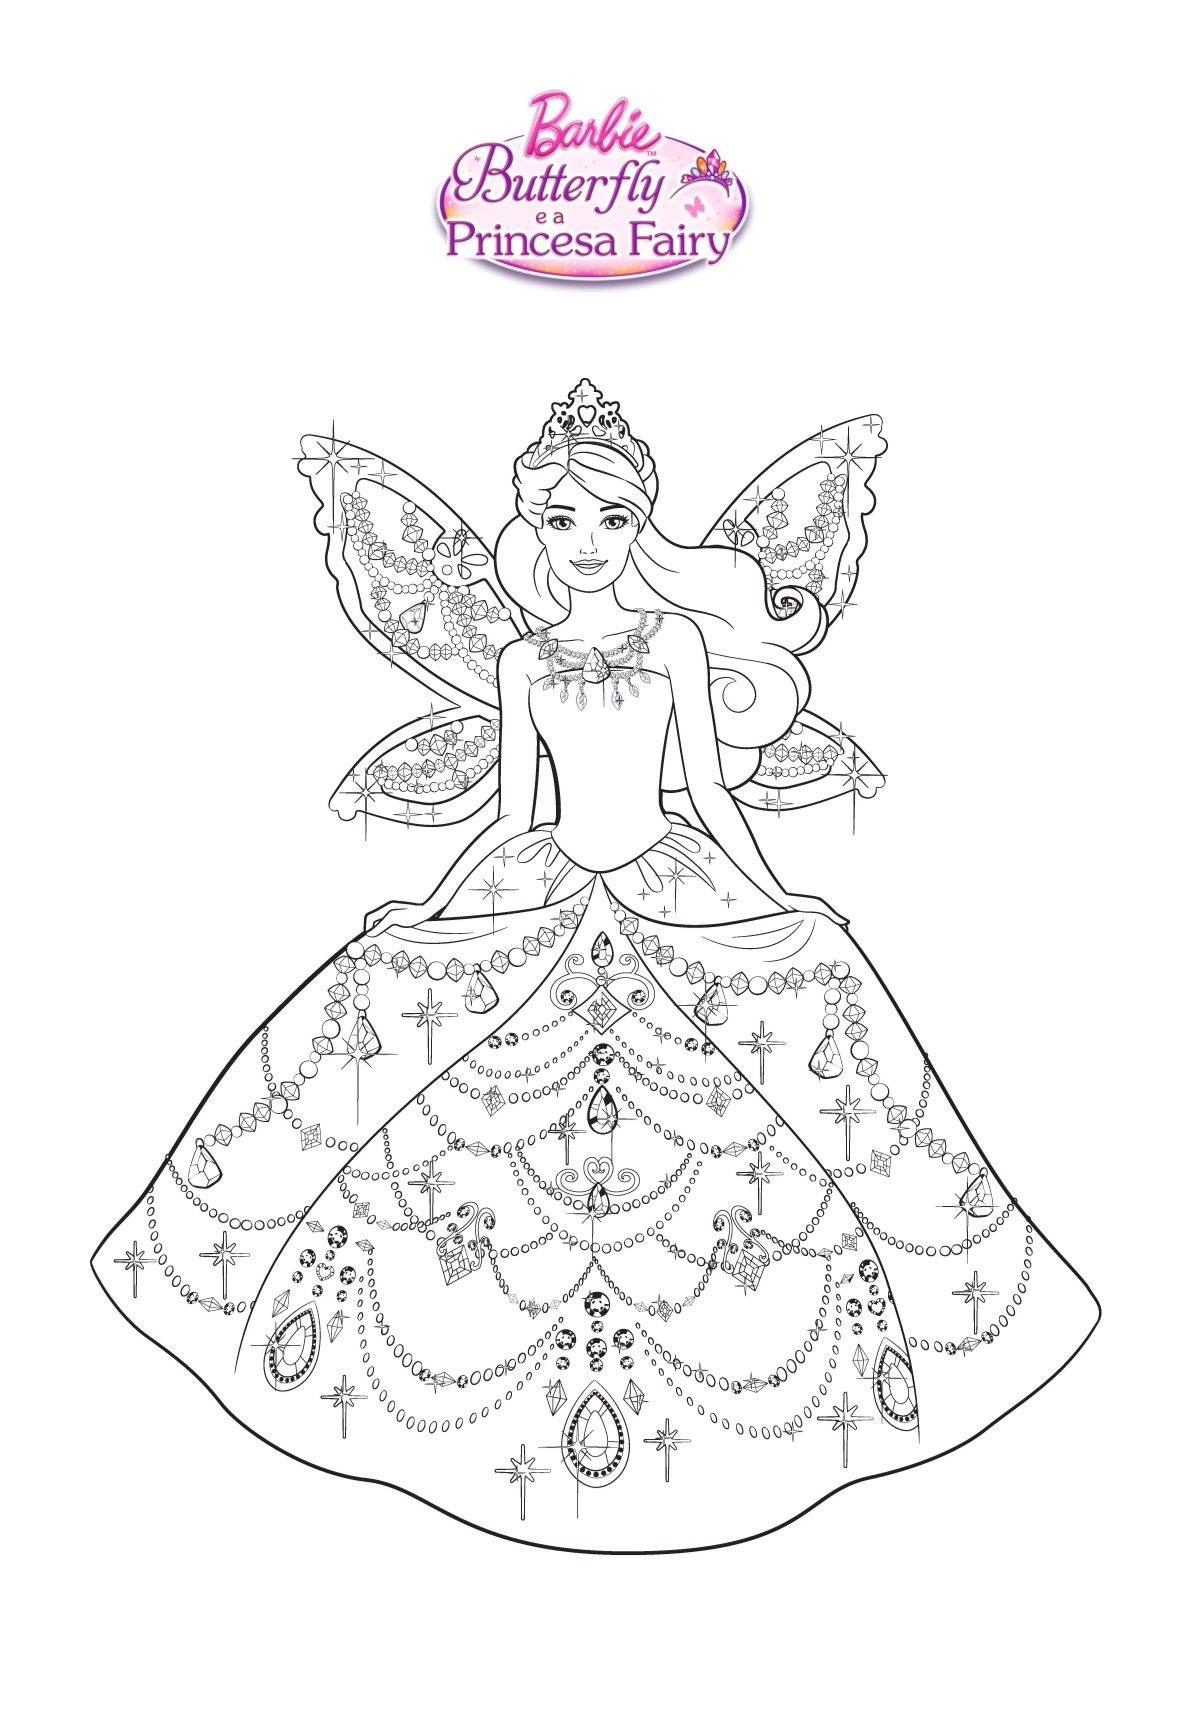 Pin By Annita Salamanca On Barbie Coloring Disney Coloring Sheets Unicorn Coloring Pages Barbie Coloring Pages